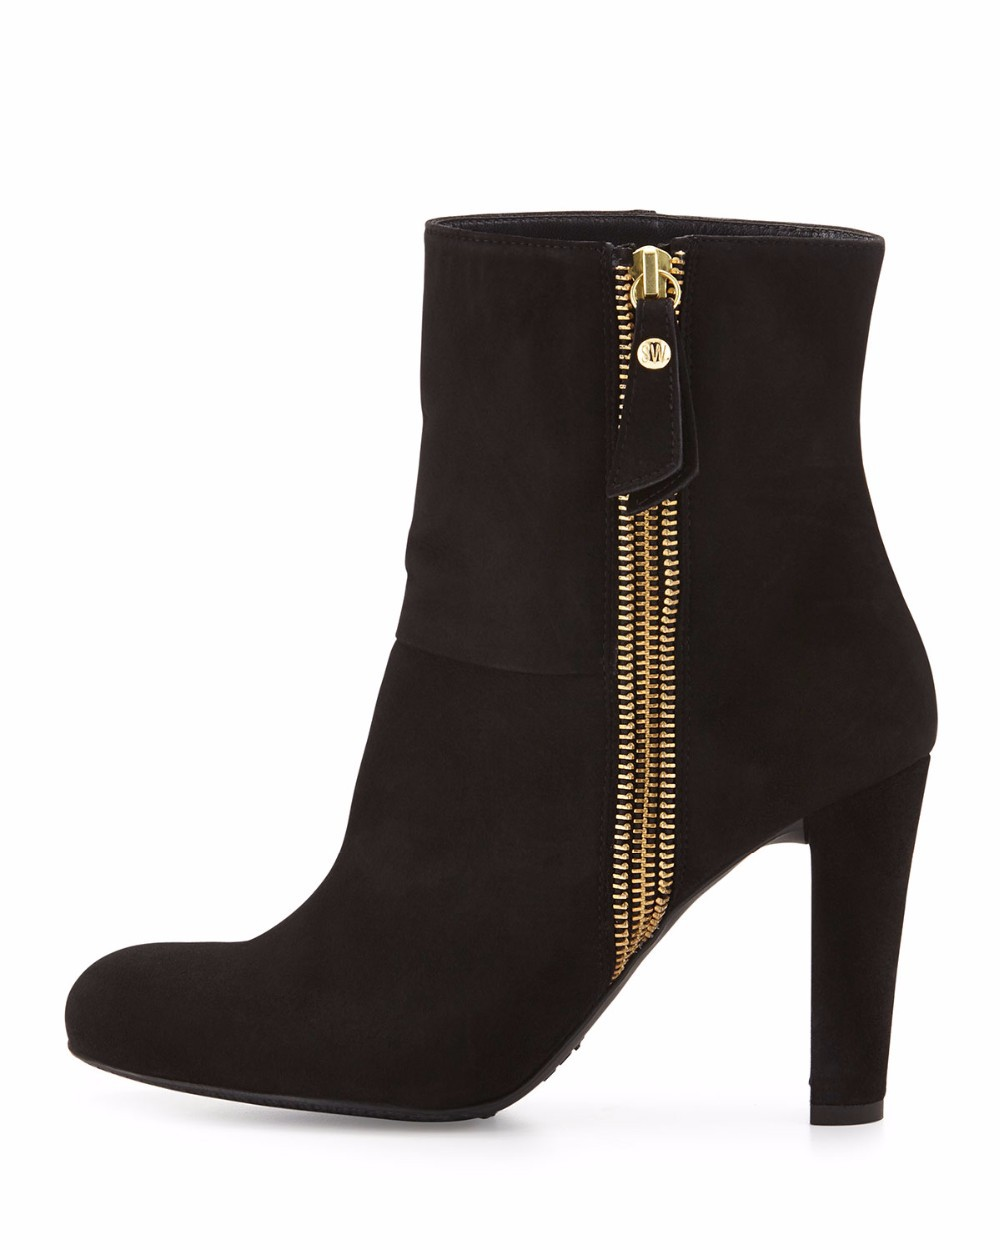 ФОТО 2016 New Fashion round toe square heel winter Boots zipper High Heel Women's Ankle boots Customize big size For Christmas